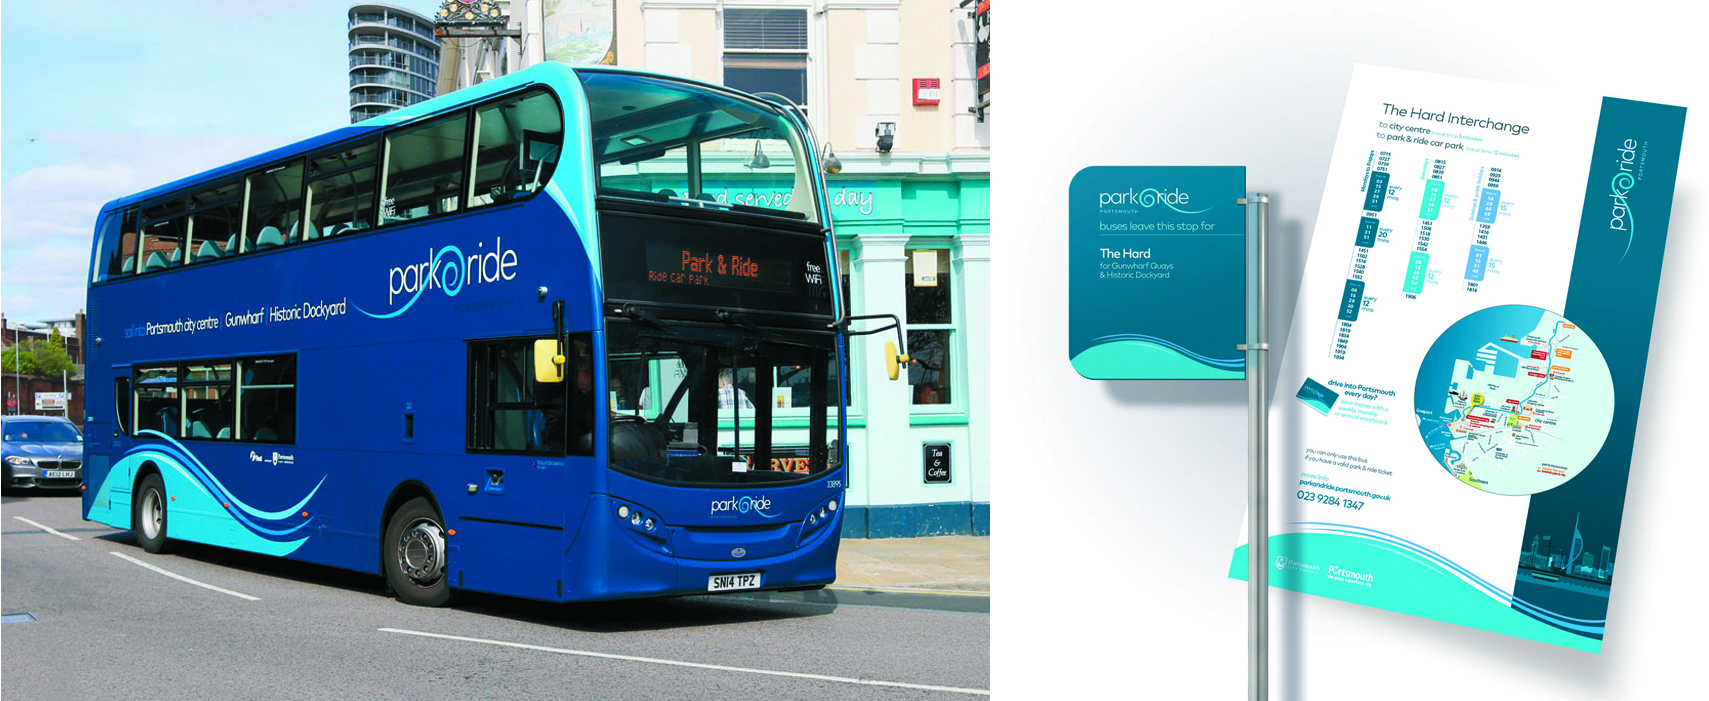 Best Impressions offers a full marketing suite. Portsmouth Park and Ride were an example of this as the vehicle makeover and (right) bus stop material show.